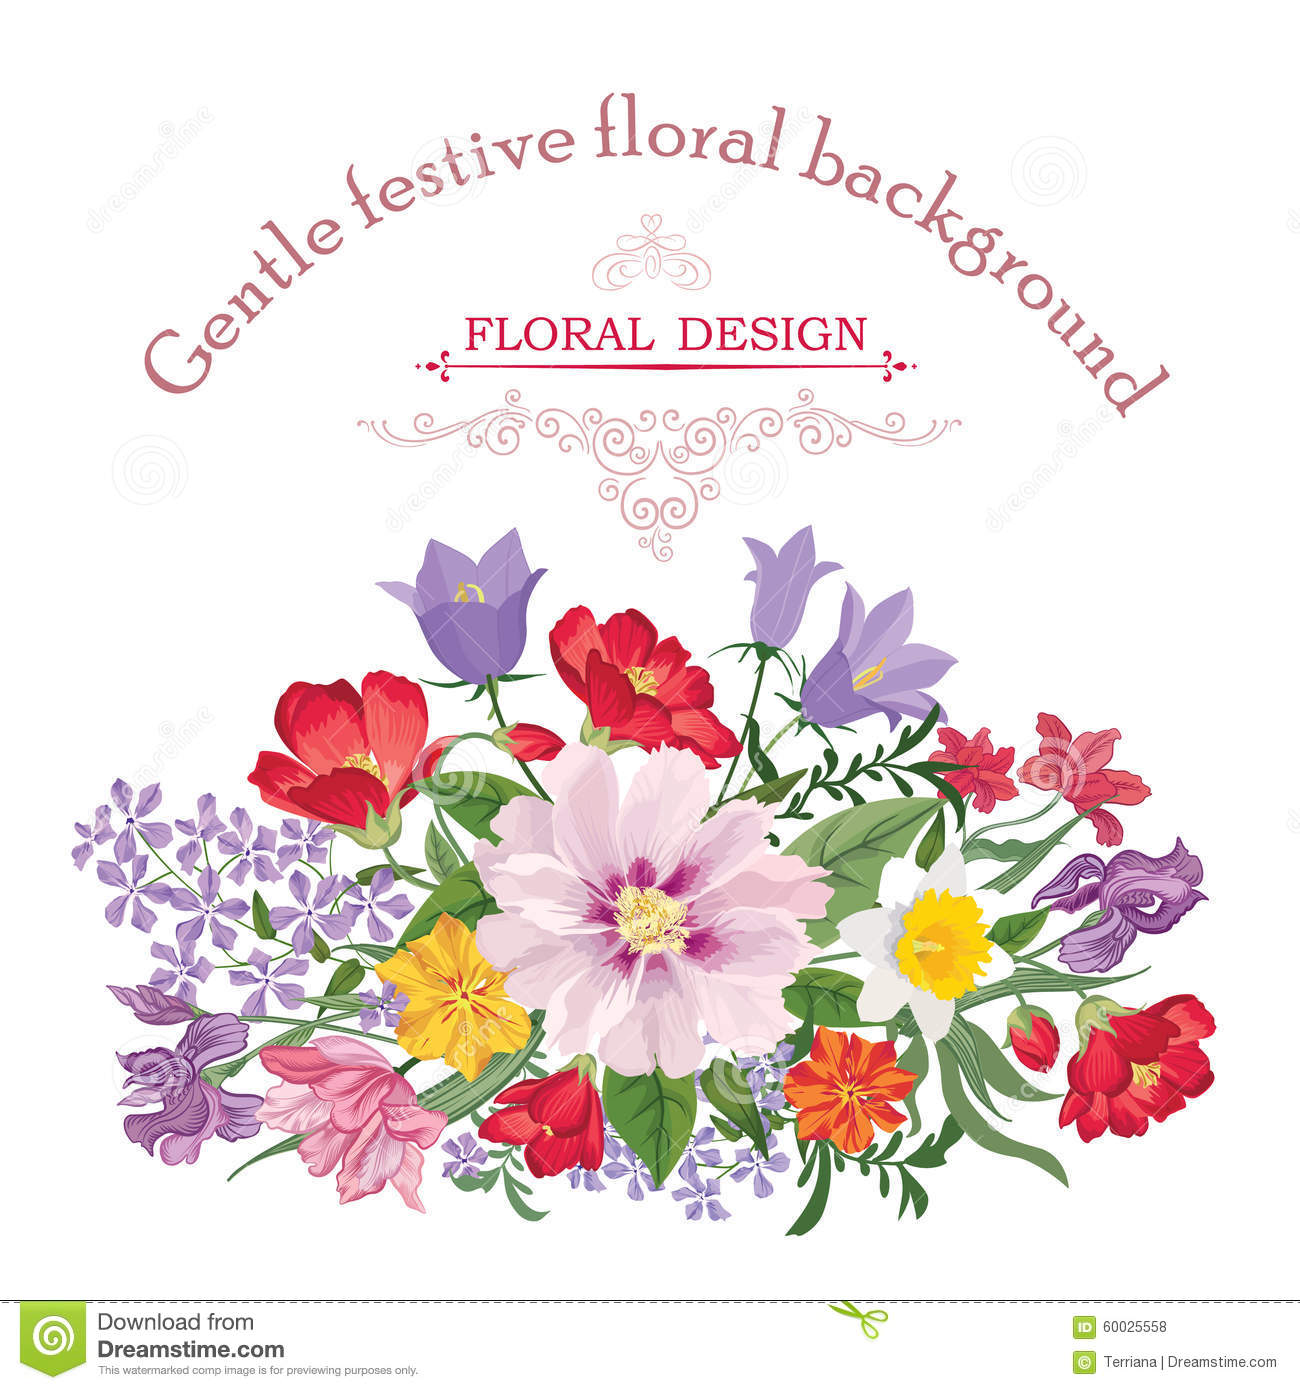 Flower bouquet floral frame flourish greeting card blooming posy download flower bouquet floral frame flourish greeting card blooming posy stock vector izmirmasajfo